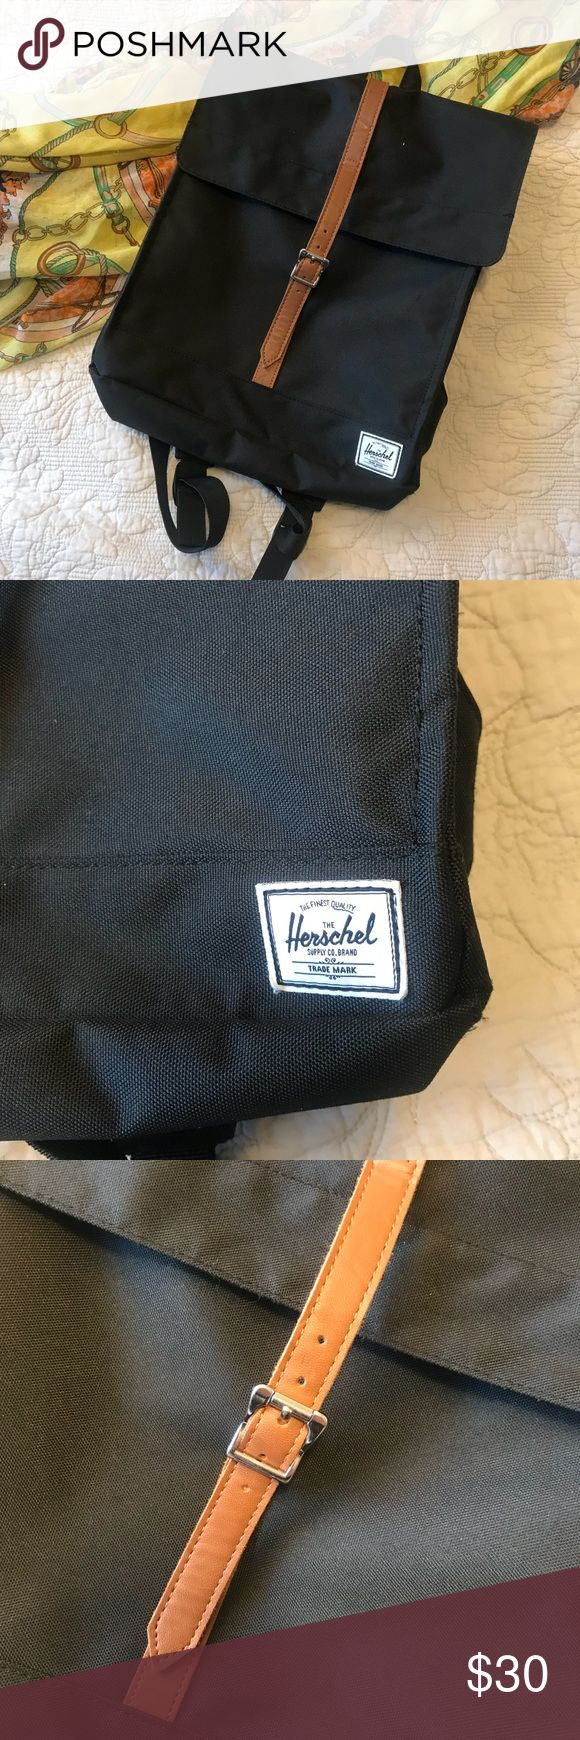 HERSCHEL Black Backpack NEW without tags Herschel backpack. Black on the outside, red print on the inside.   14in long x 12.5in wide Herschel Supply Company Bags Backpacks